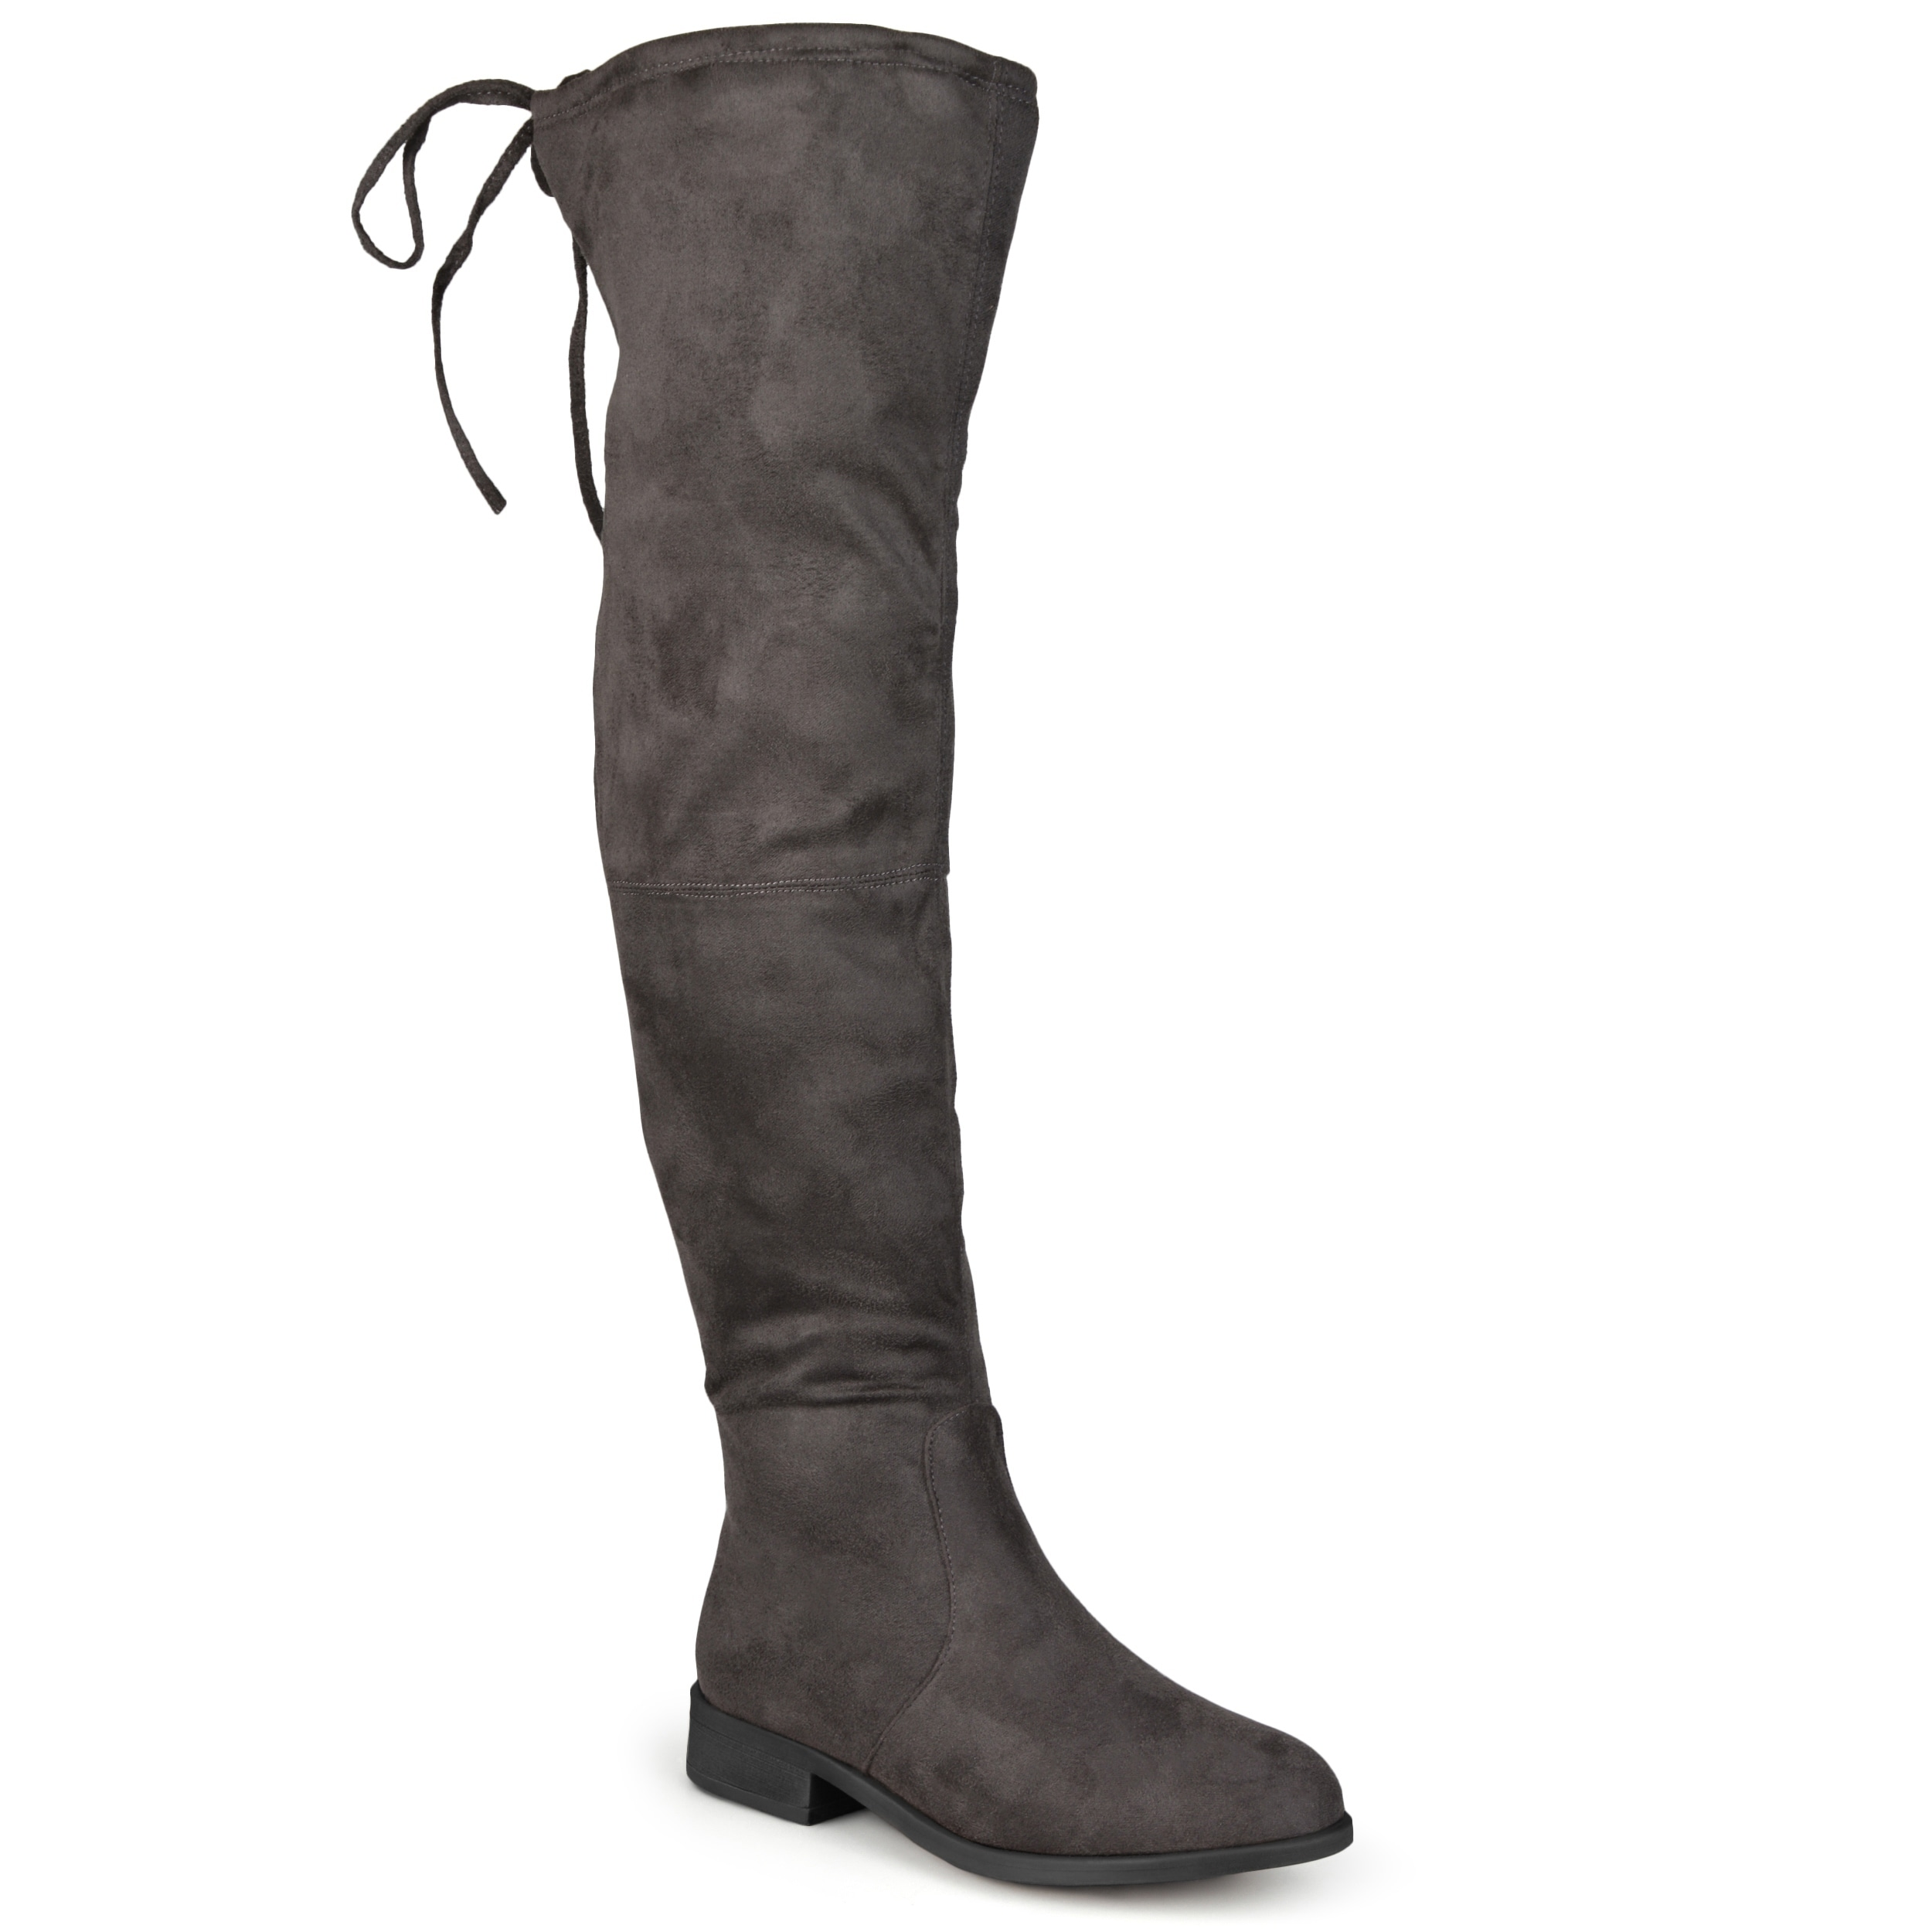 05a3ba871aa Shop Journee Collection Women s  Mount  Over-the-knee Faux Suede Boots -  Free Shipping Today - Overstock - 10425787